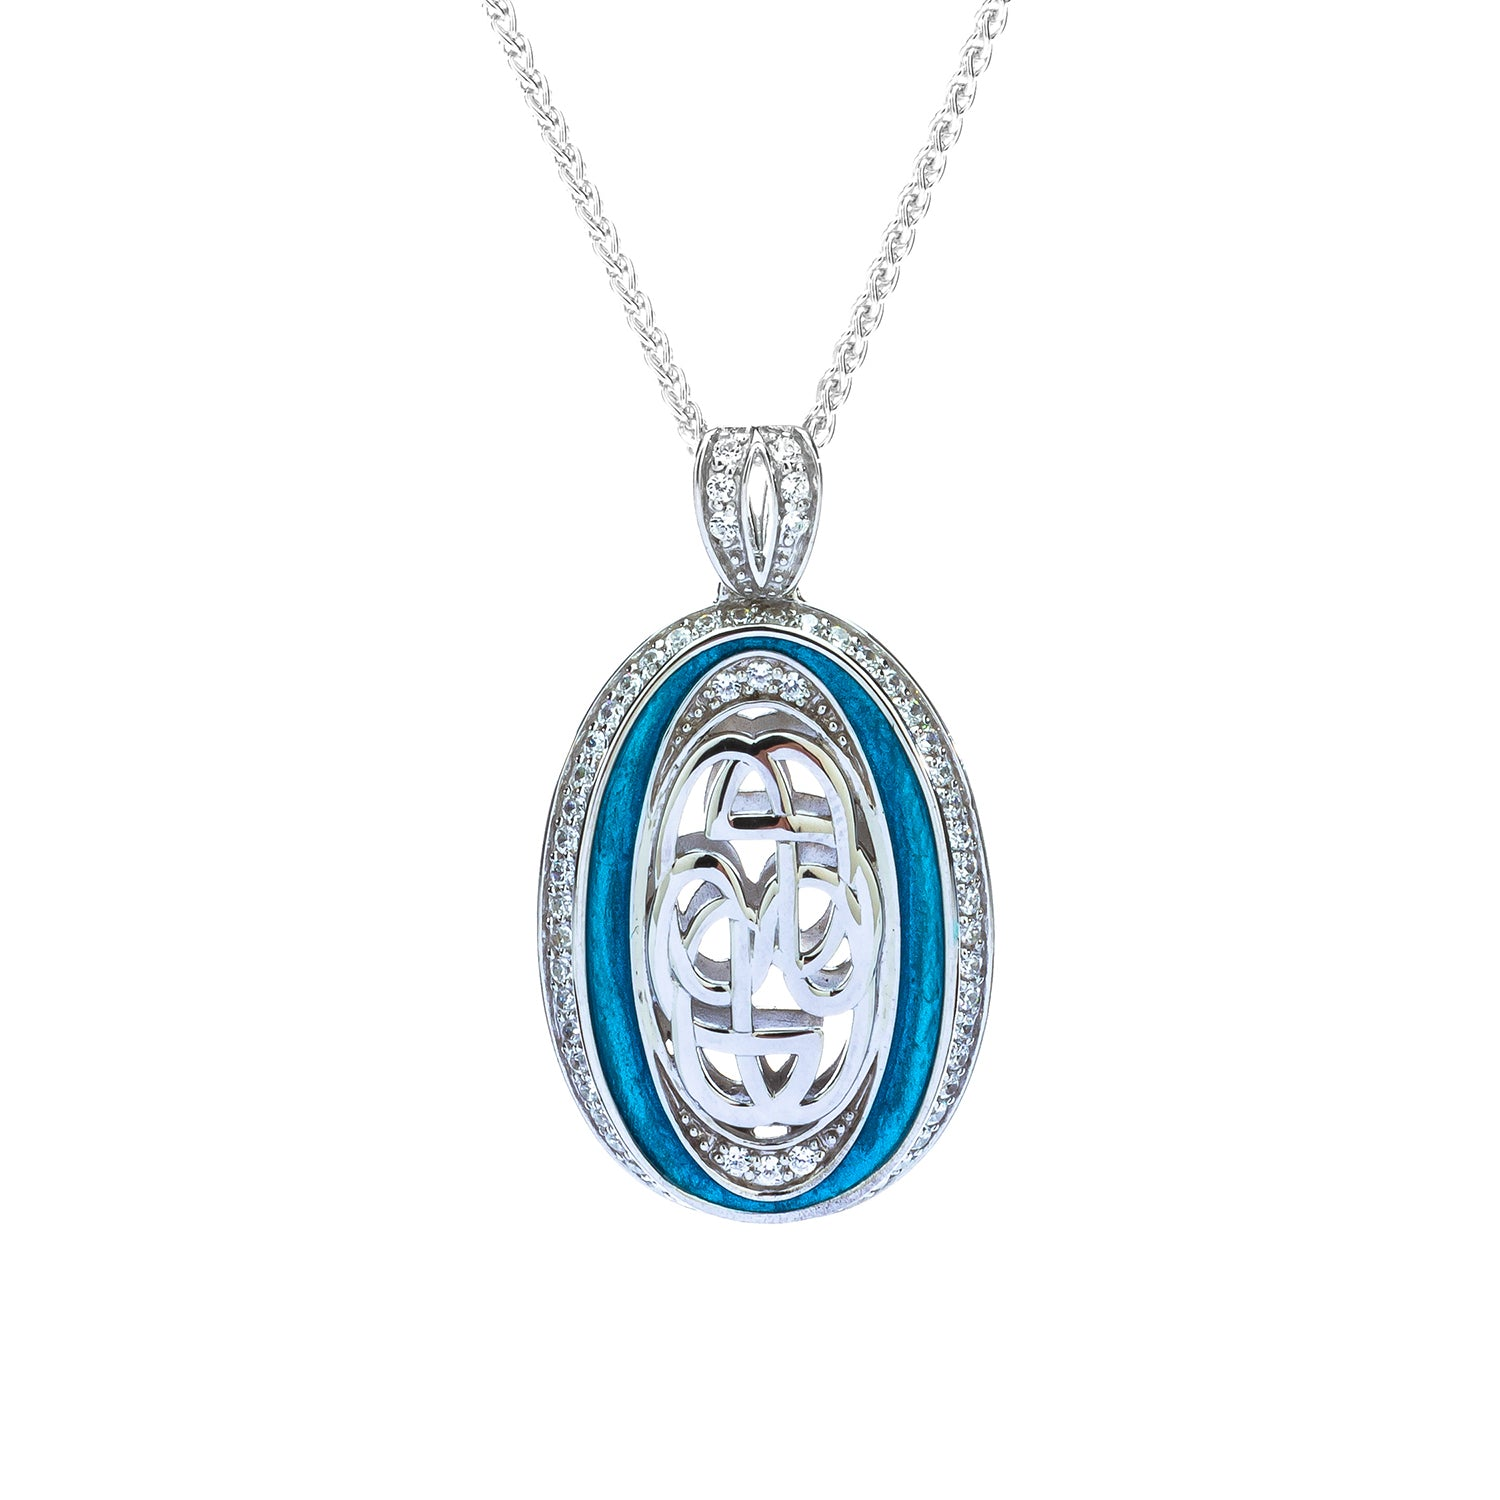 Pendant Sky Blue Enamel CZ Path of Life Large Pendant from welch and company jewelers near syracuse ny